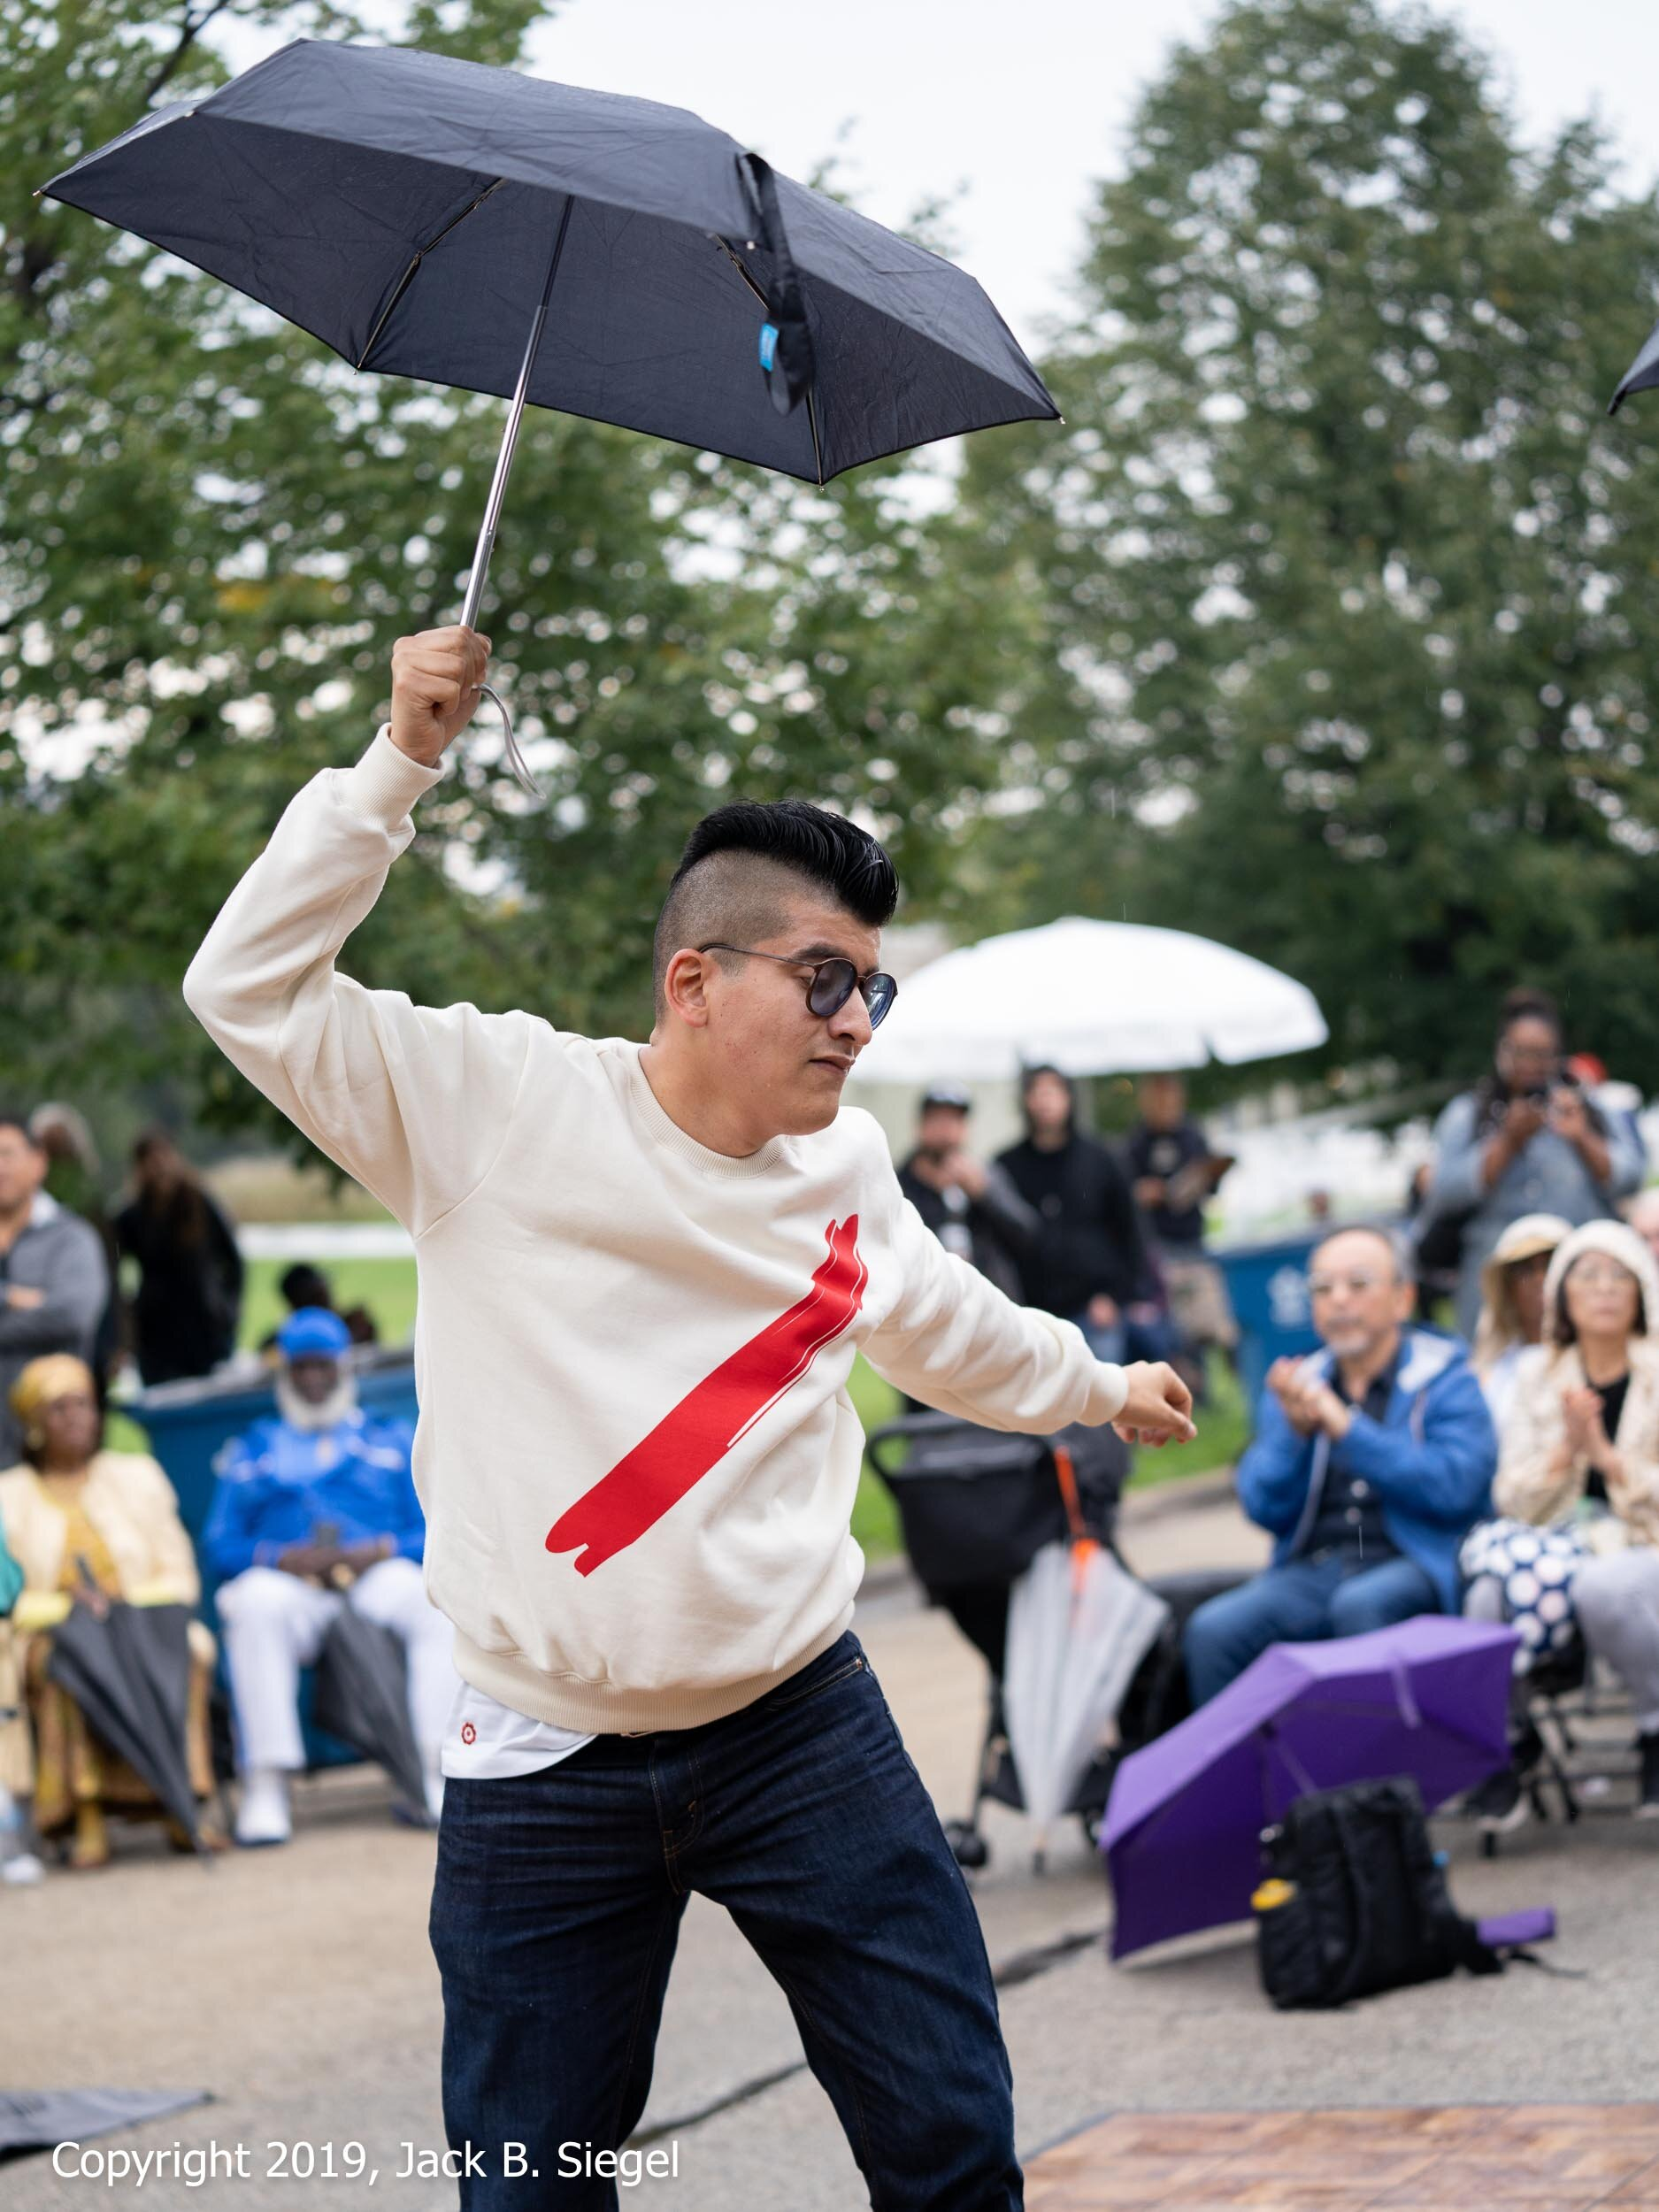 Fighting Off Some Light Drizzle with an Umbrella and Some Dance Moves